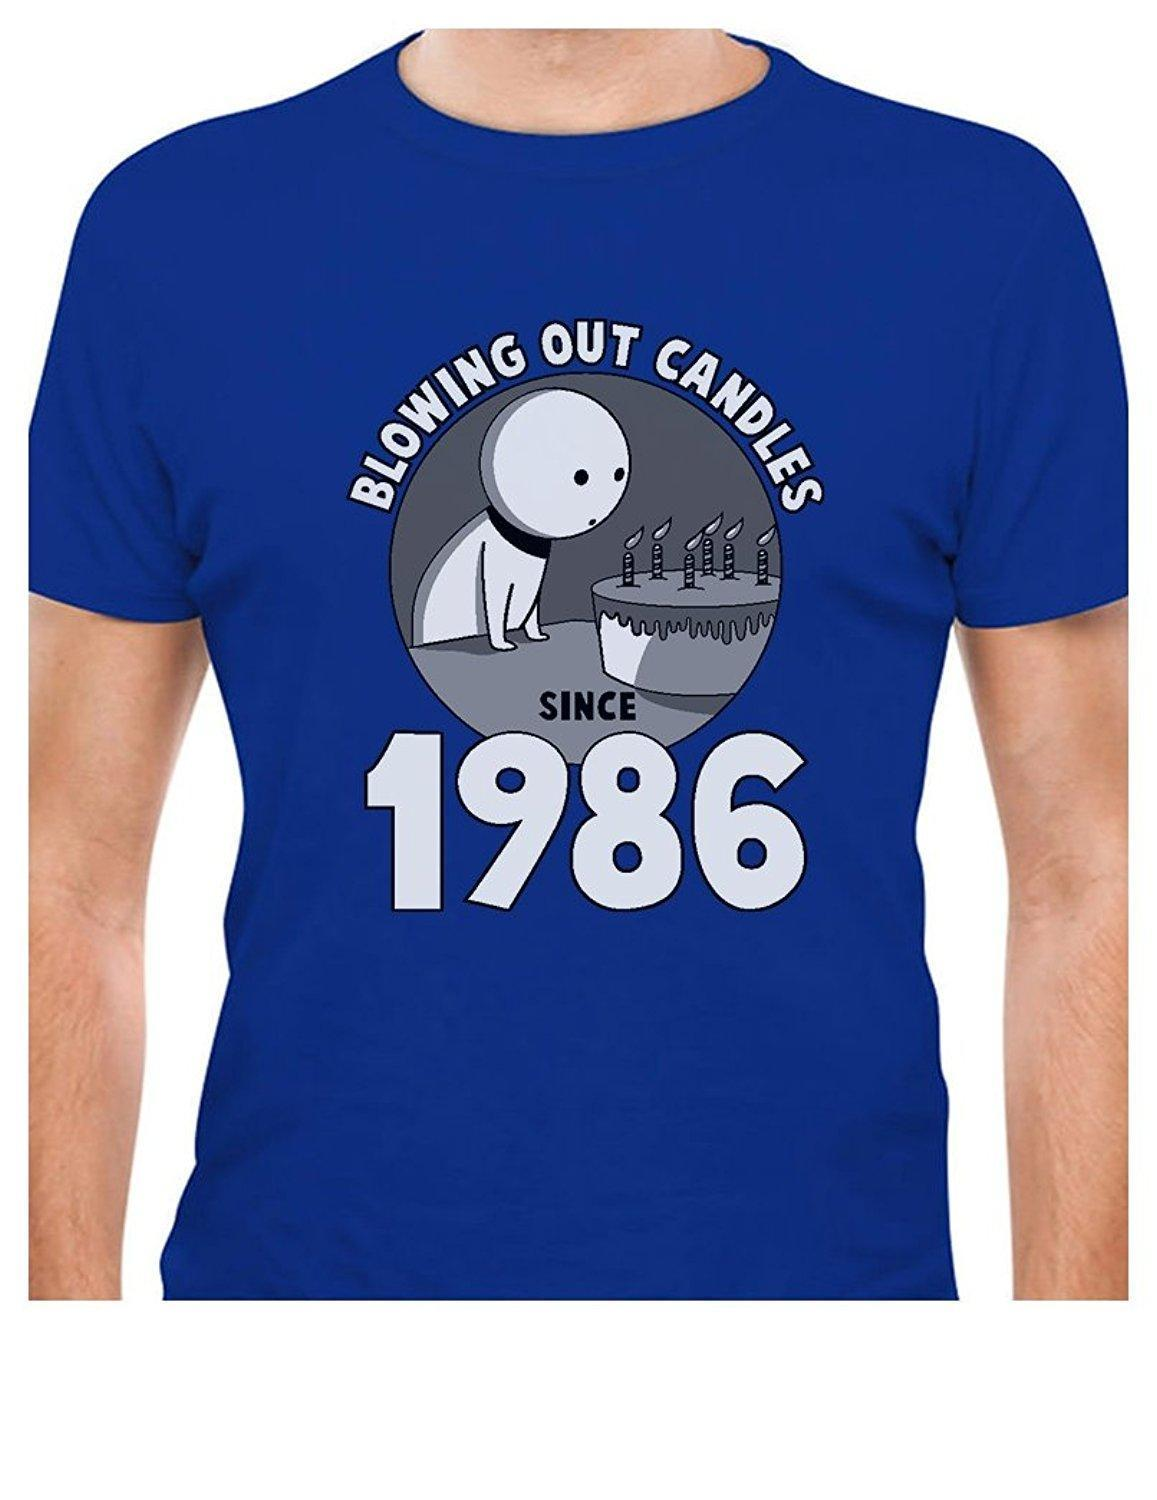 Printed Tee Shirt Design 30th Birthday Gift Idea Blowing Out Candles Since 1986 T Circle Designers Designer Coolest Shirts From